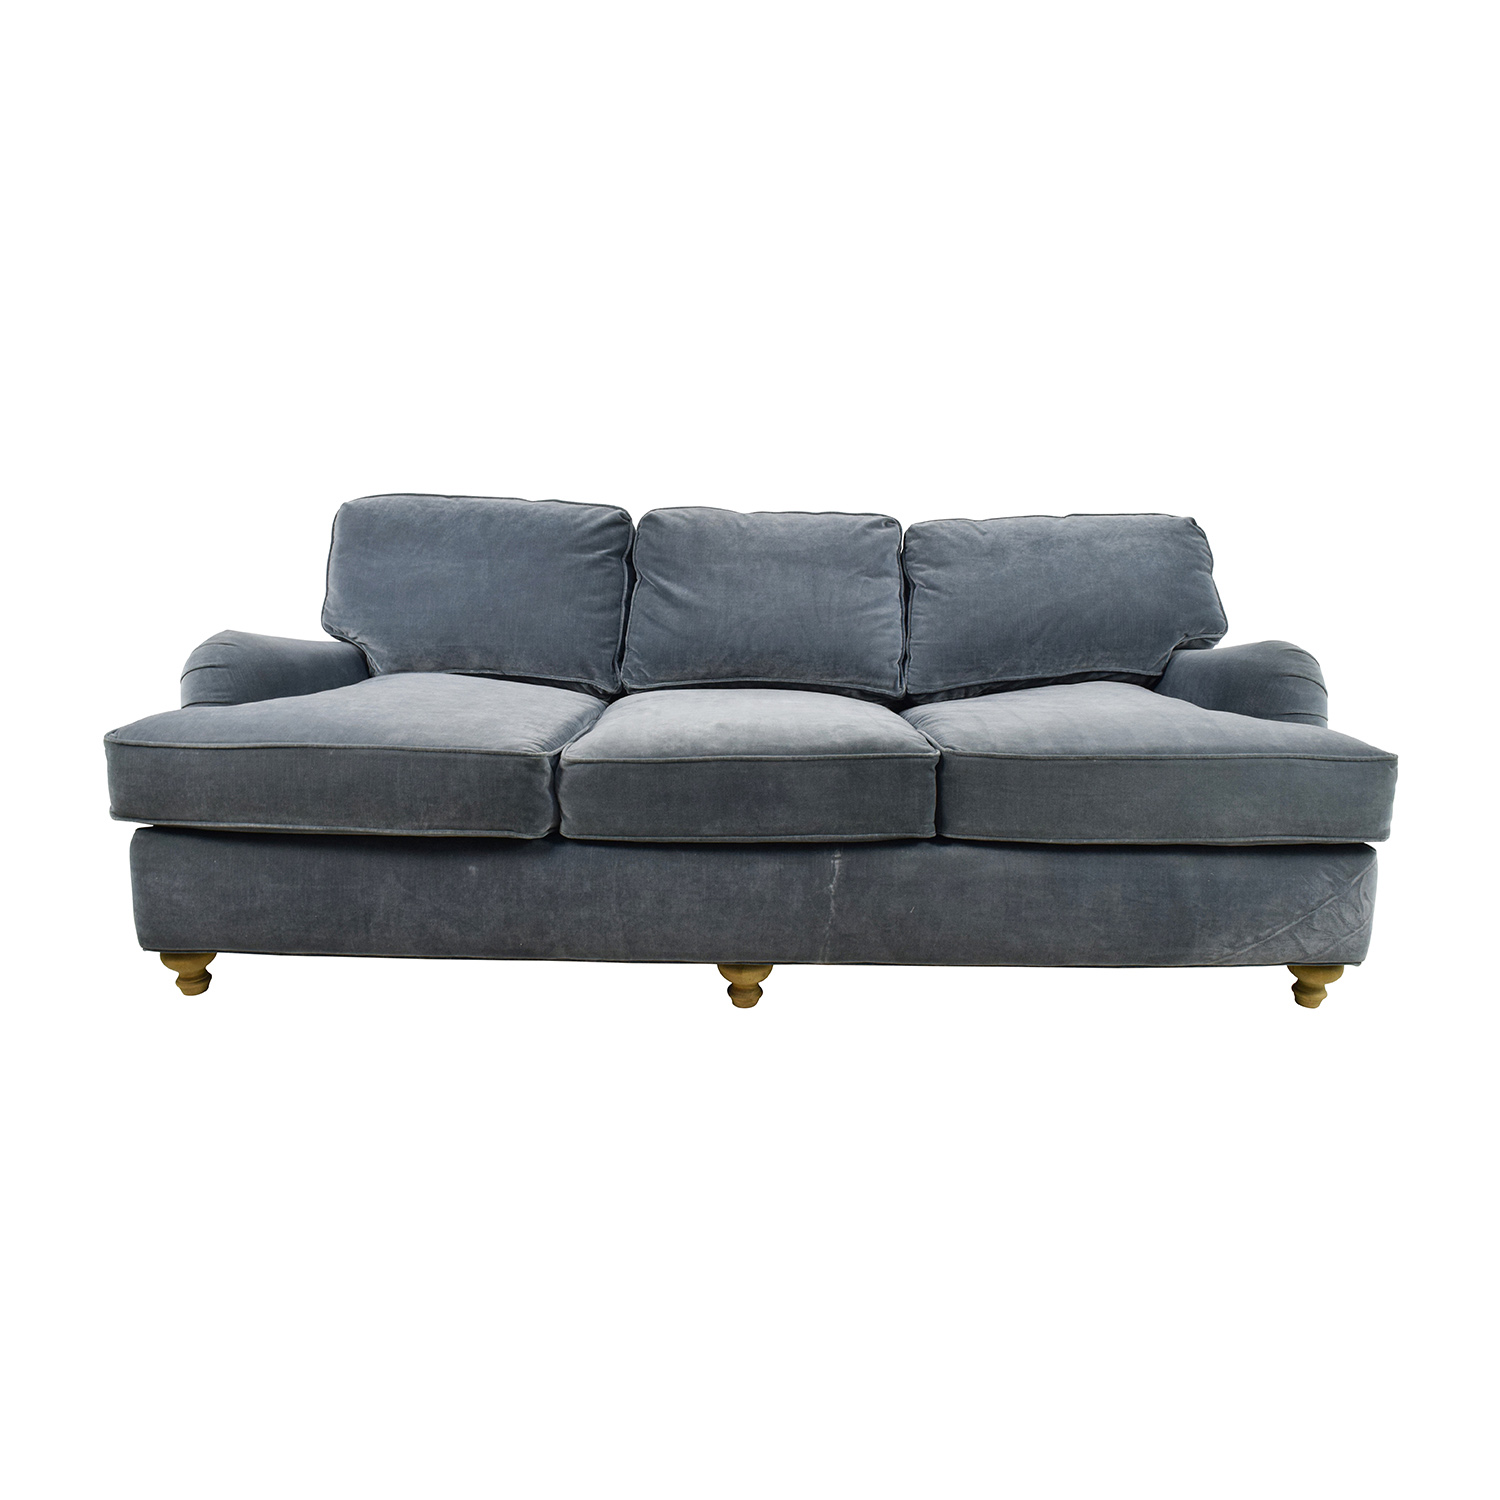 Restoration Hardware English Roll Arm 84 Sleeper Sofa